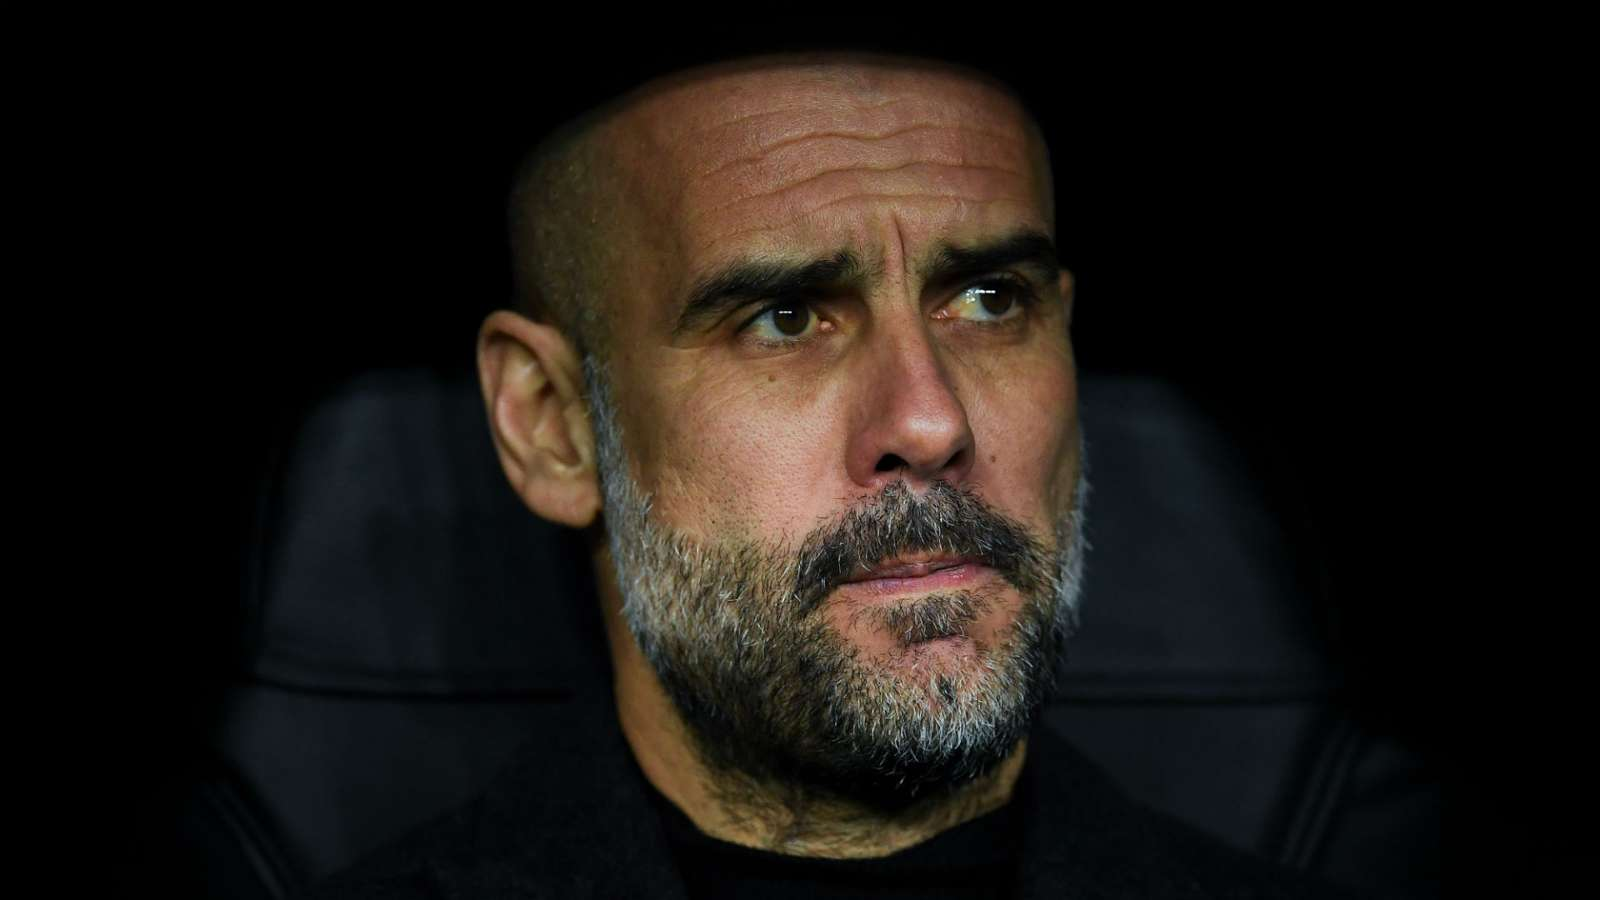 Guardiola's mother dies of coronavirus, Manchester City confirm